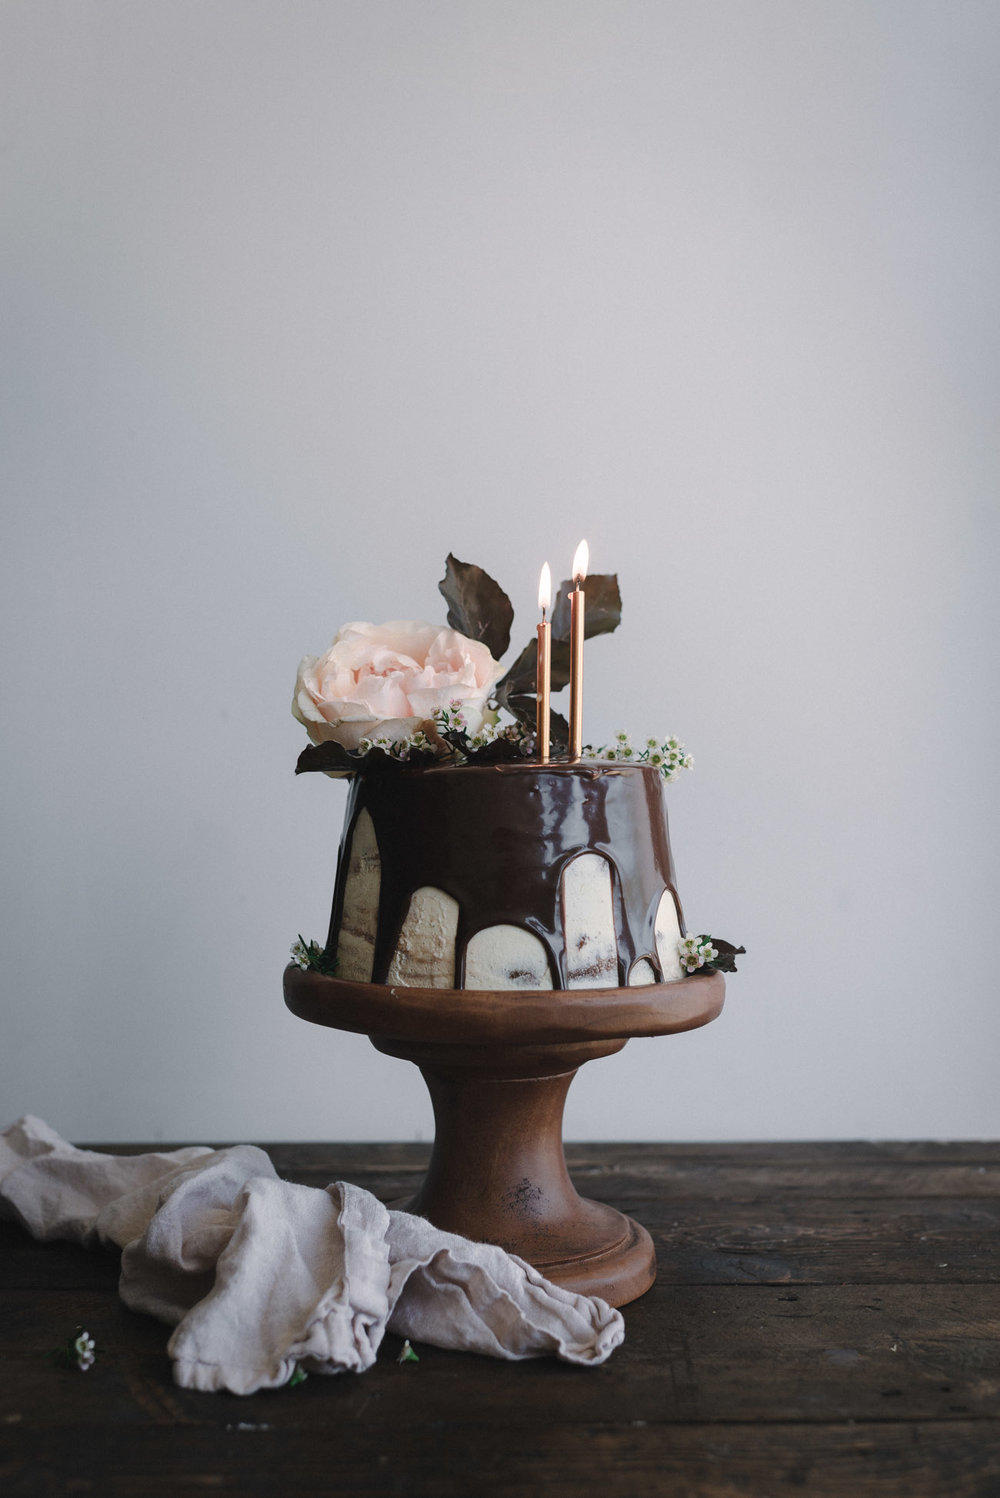 Gingerbread-Whisky-Cake-with-Brown-Sugar-Swiss-Meringue-Buttercream-and-Milk-Chocolate-Ganache-6.jpg